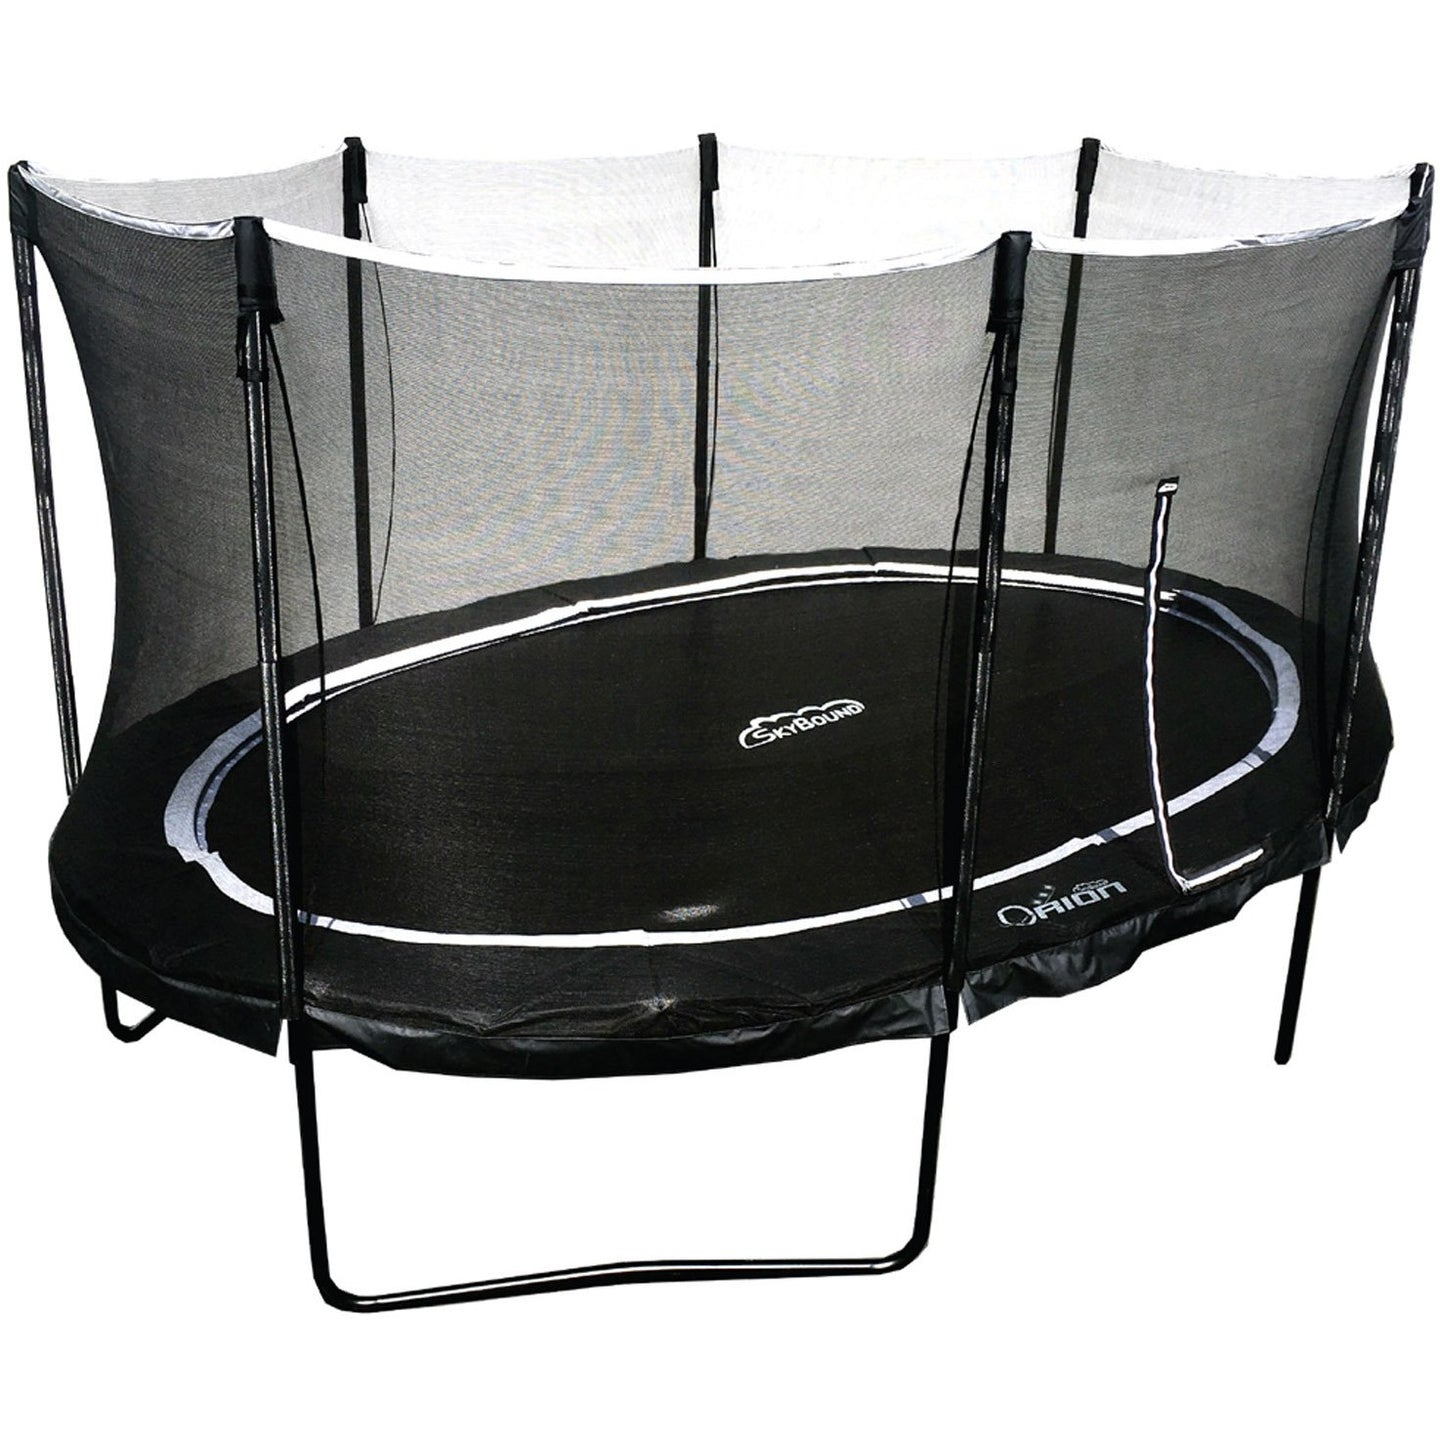 SkyBound 14FT X 10FT Orion Trampoline With Net Enclosure